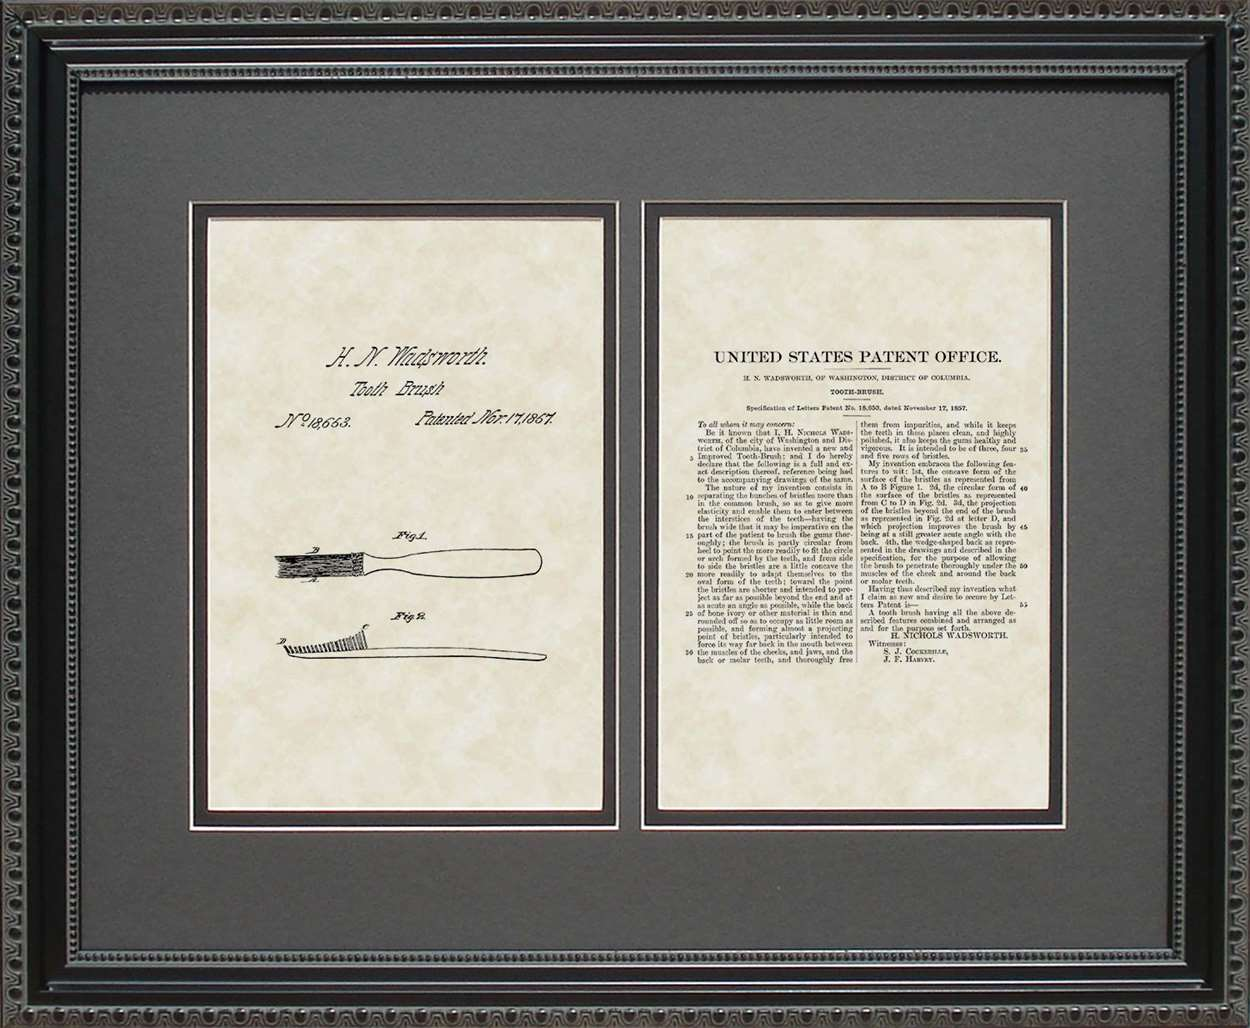 Toothbrush Patent, Art & Copy, Wadsworth, 1857, 16x20